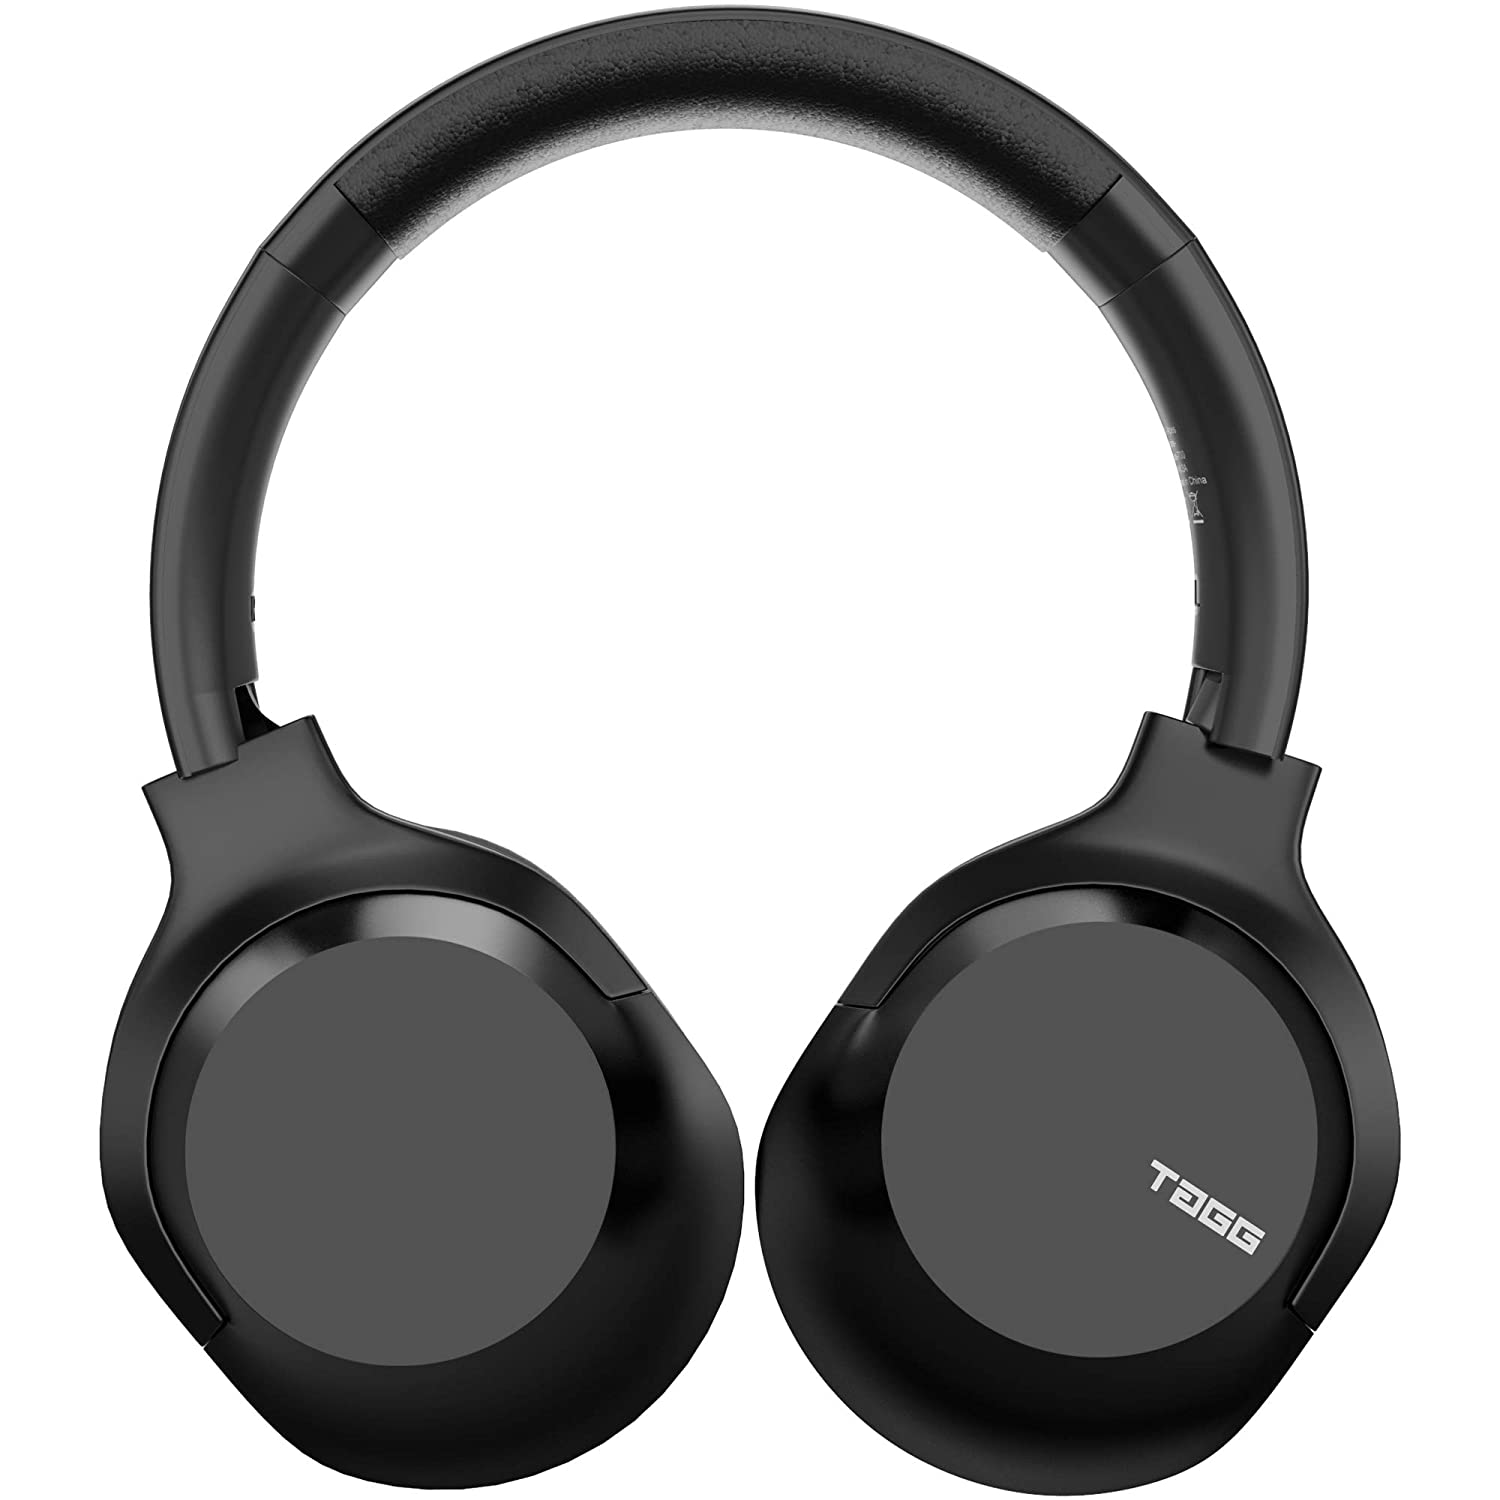 TAGG PowerBass 700 Over-Ear Wireless Bluetooth Headphones with Mic